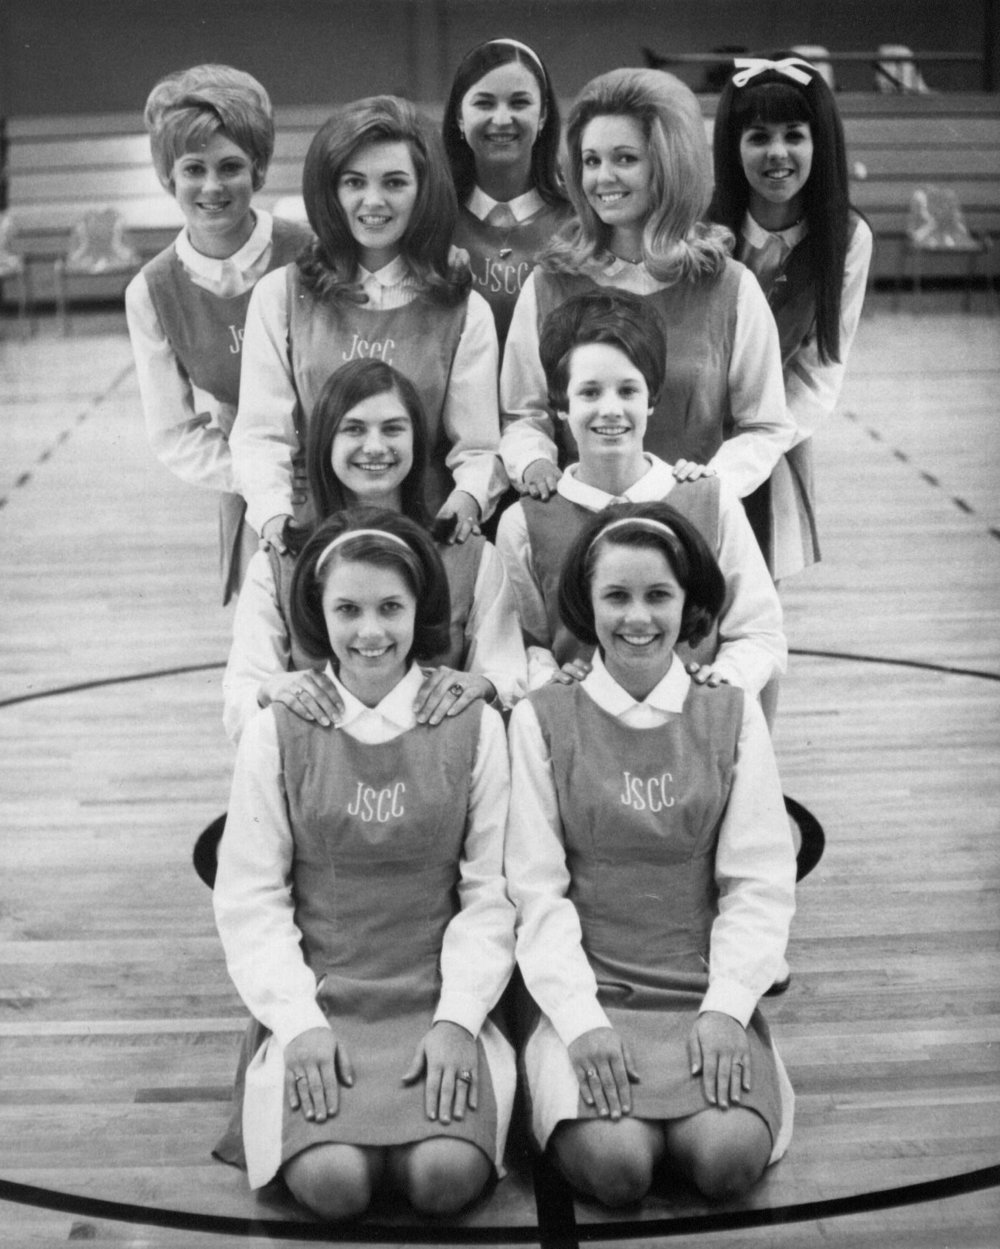 Cheerleaders, 1960s